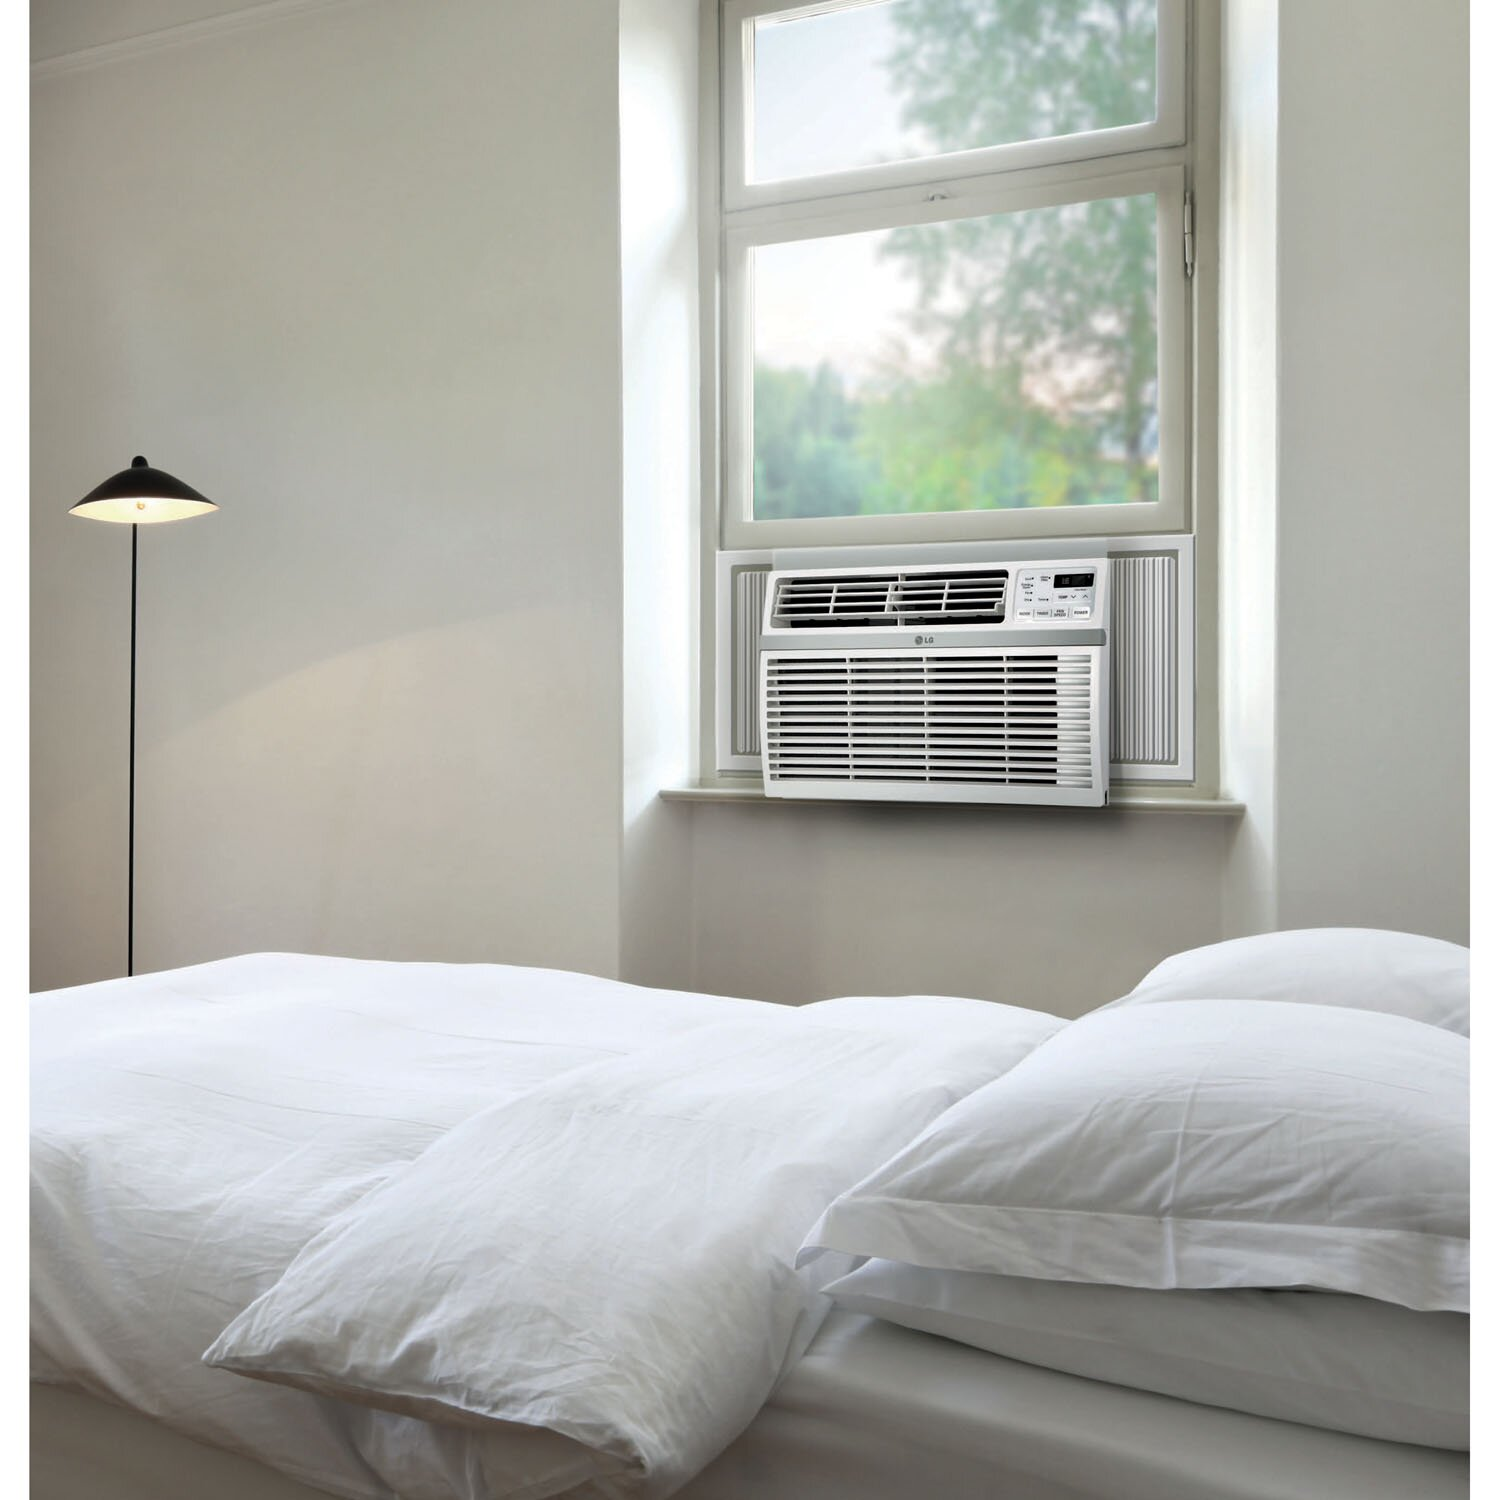 LG 8000 BTU Window Air Conditioner with Remote & Reviews Wayfair #5B706A